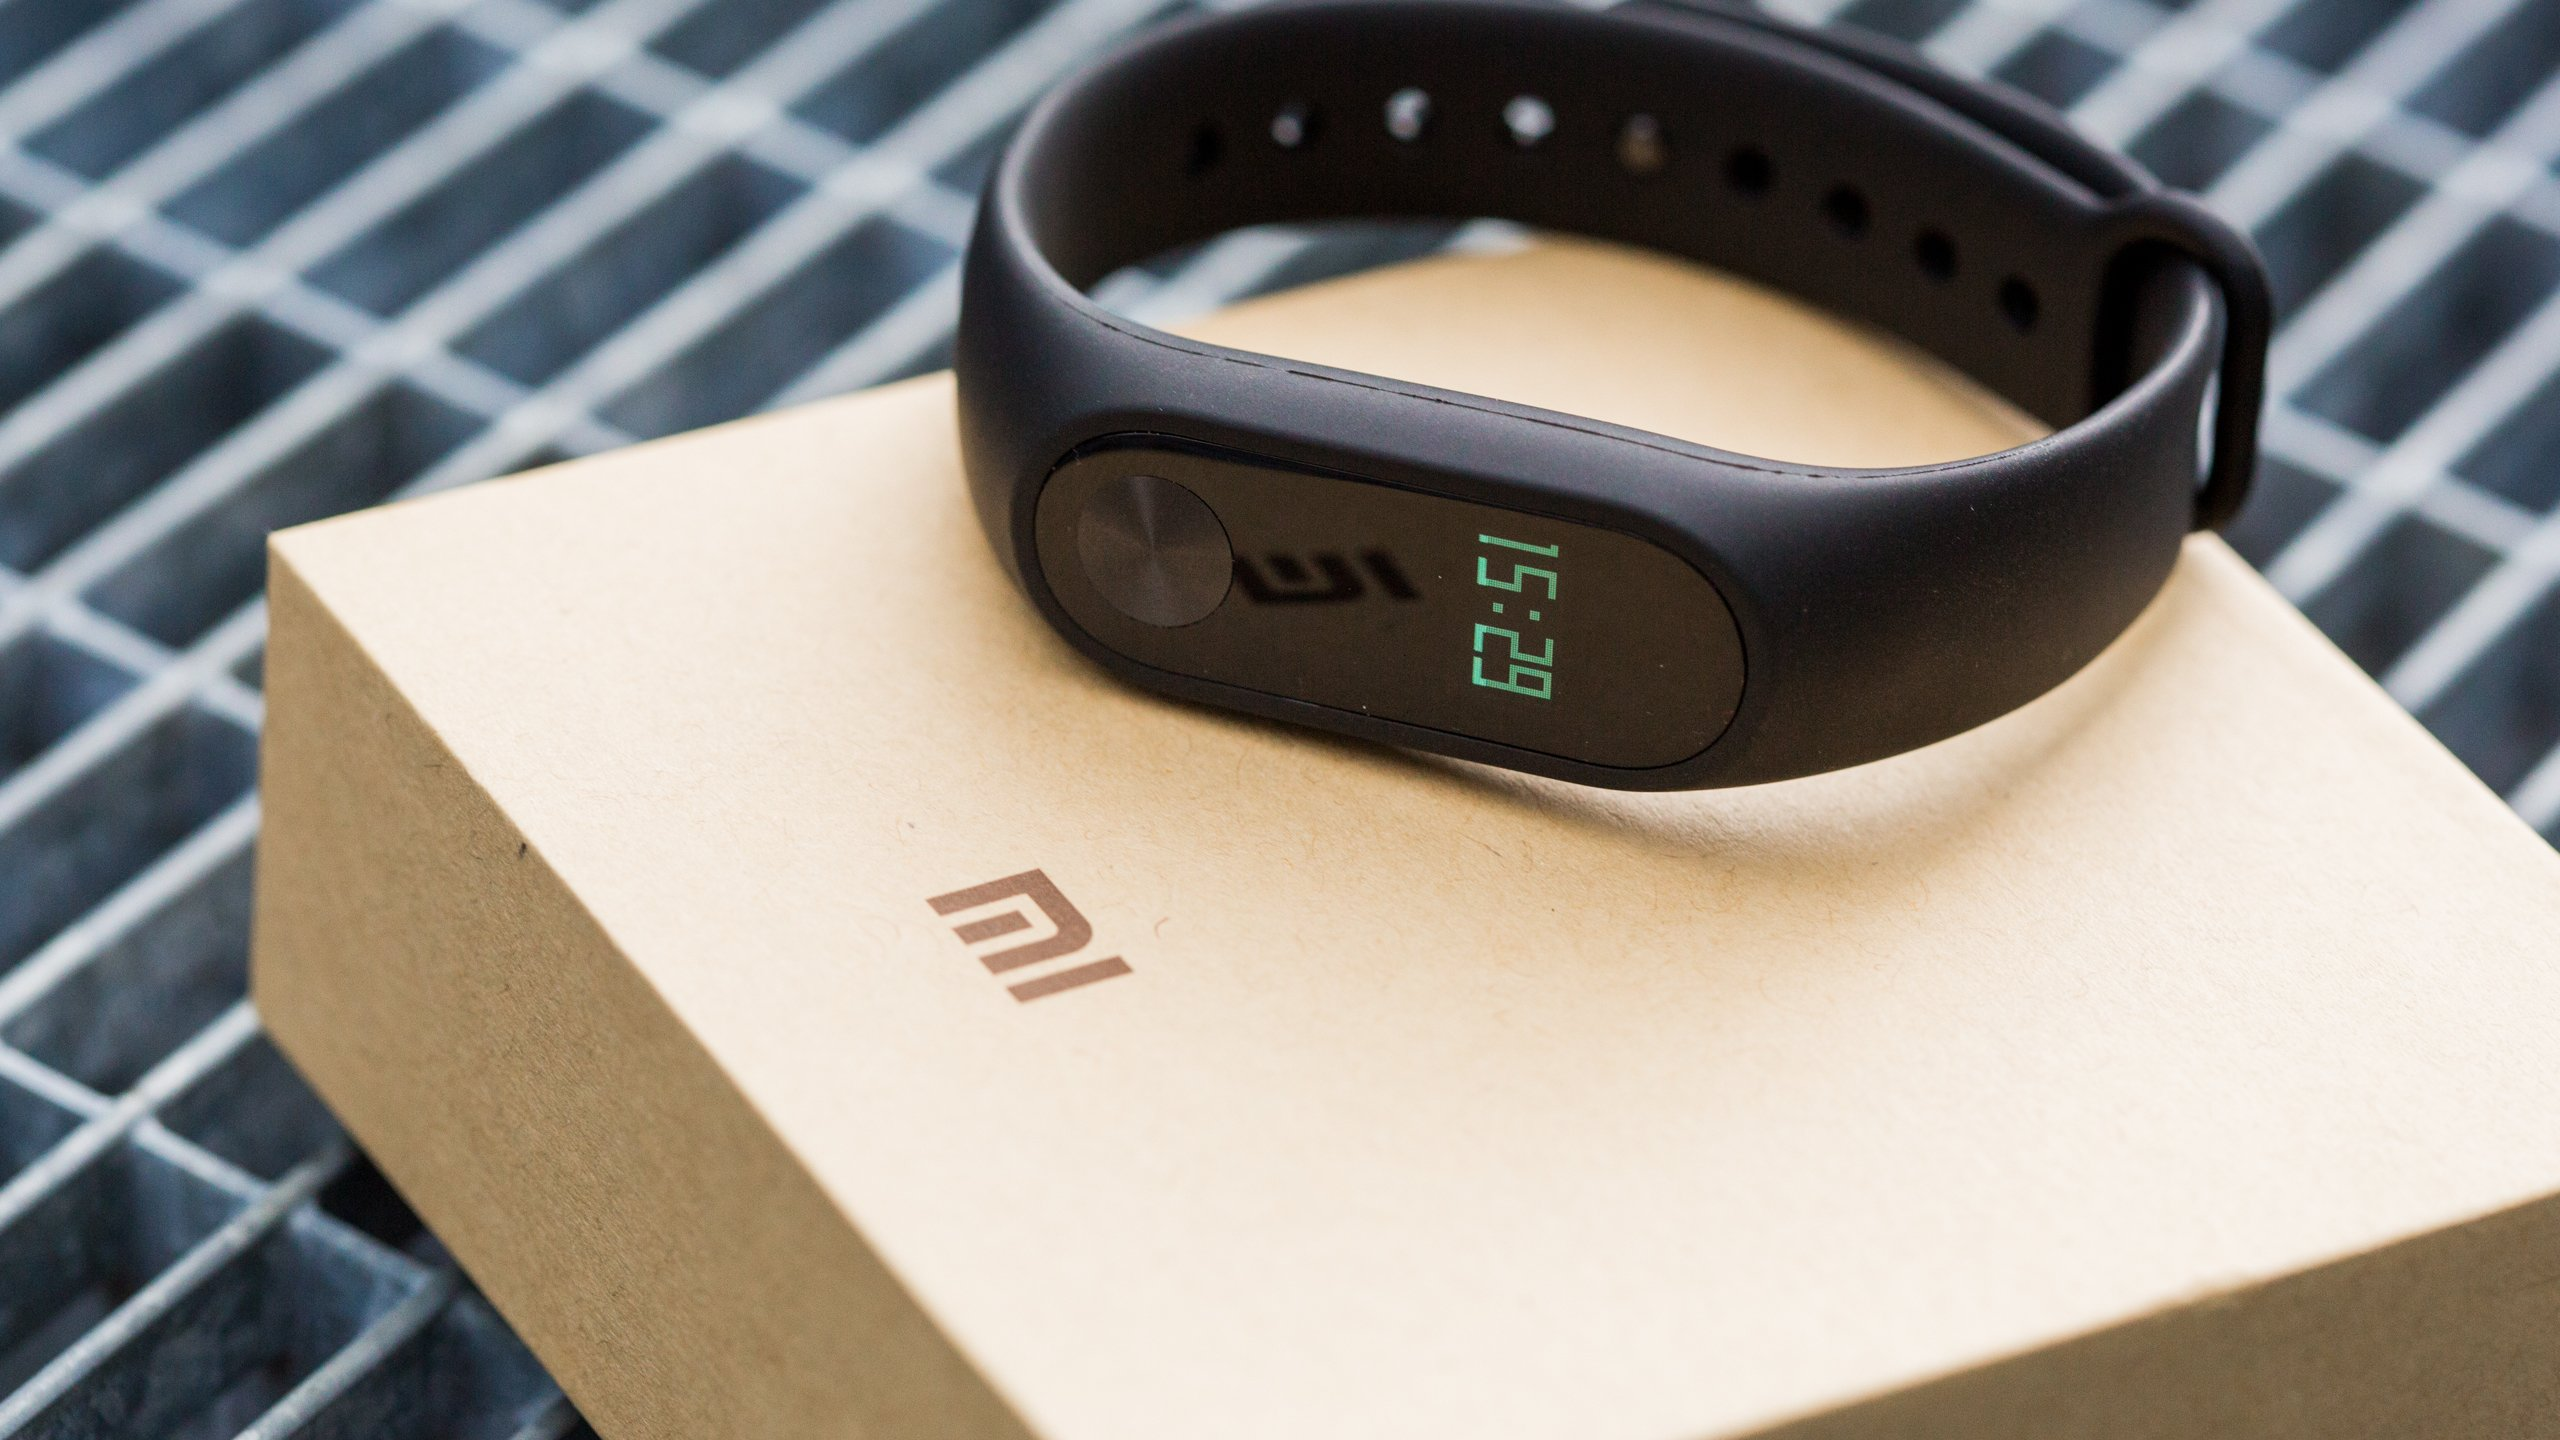 xiaomi mi band 2 review king of the budget fitness. Black Bedroom Furniture Sets. Home Design Ideas